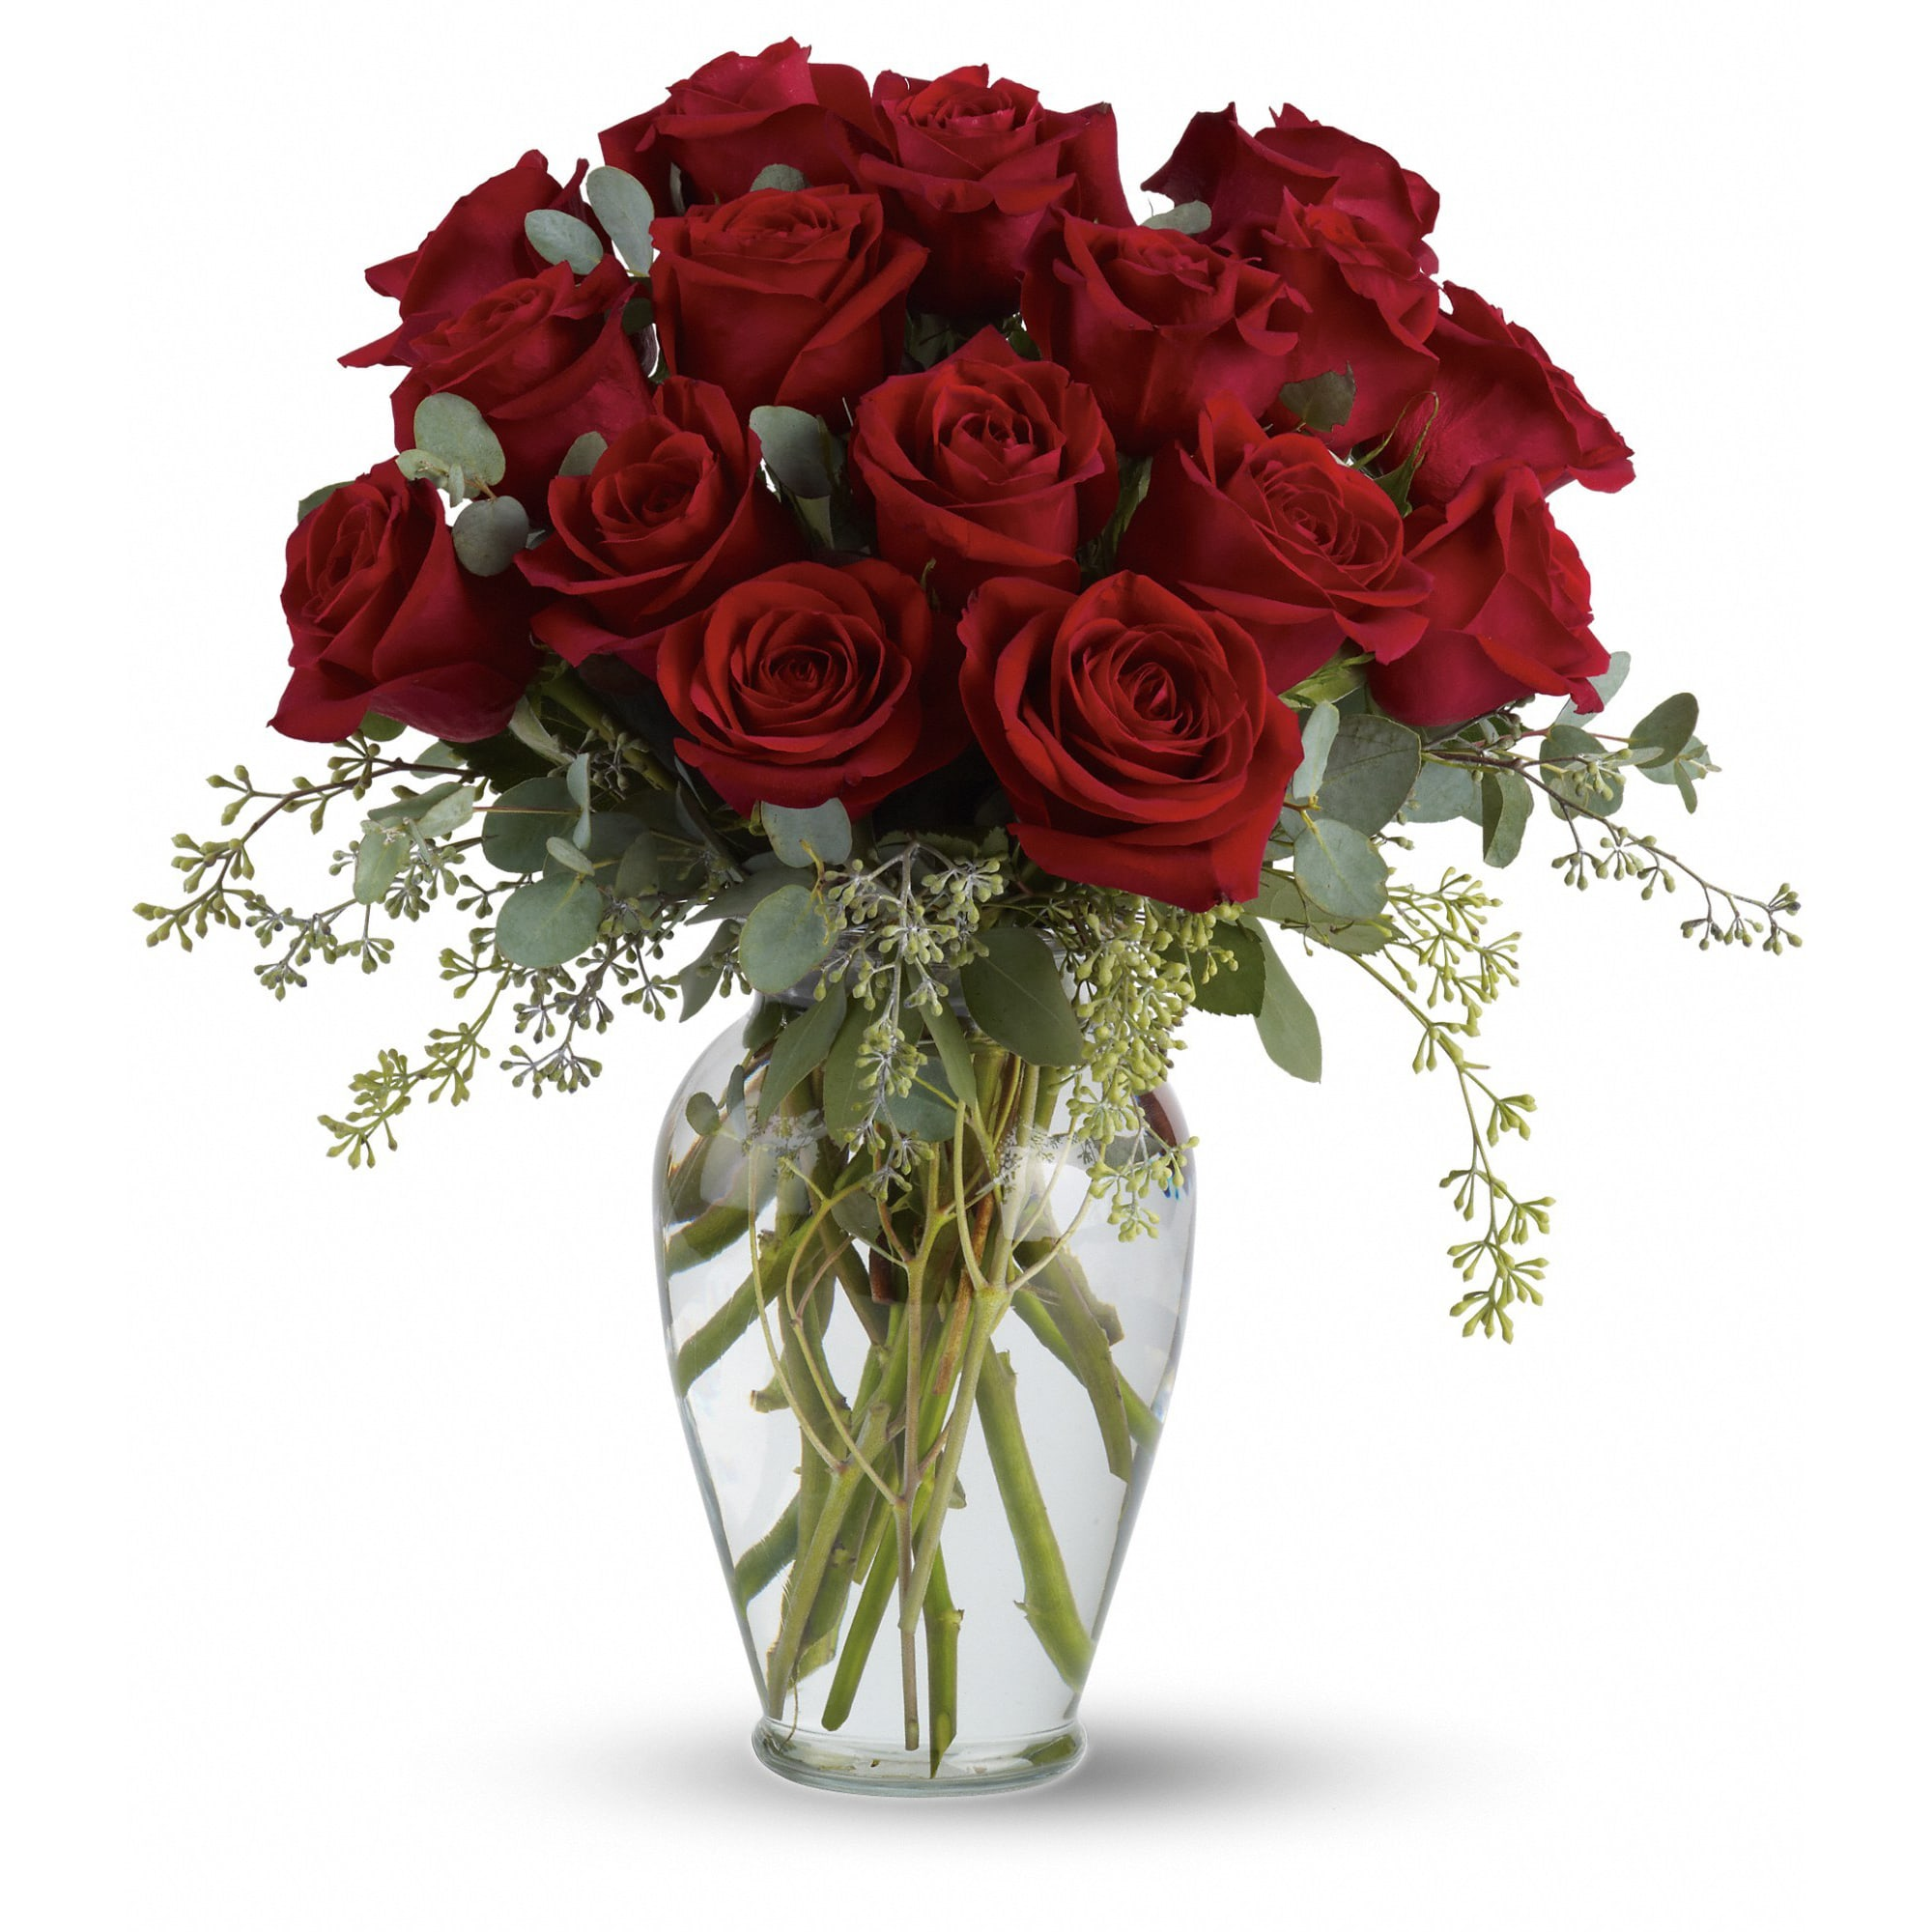 Full Heart 16 Premium Red Roses By Teleflora In Minot Nd Flower